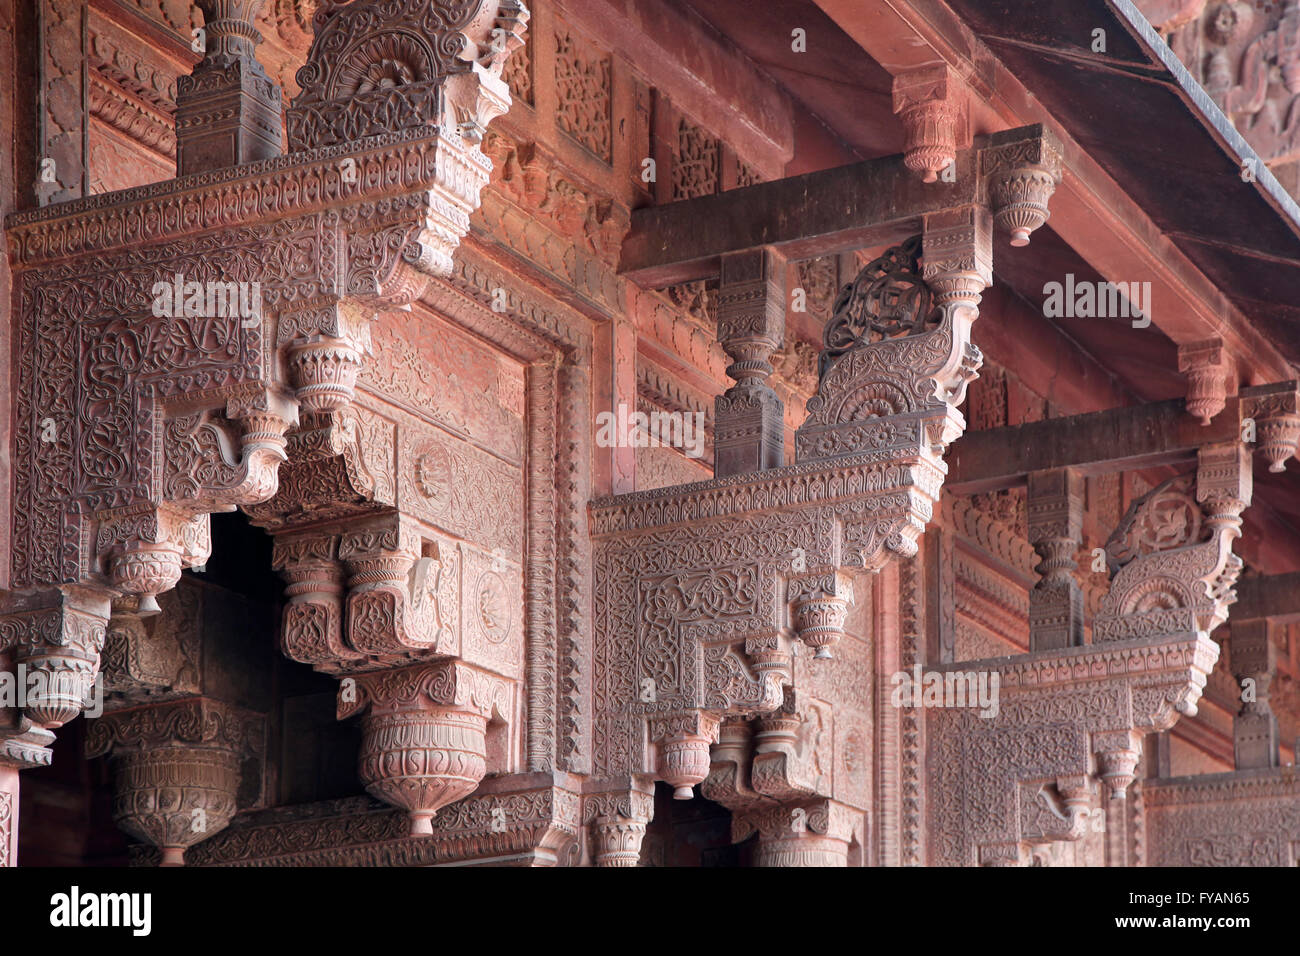 Elaborate wall supports, Agra Fort, Agra, Uttar Pradesh, India - Stock Image